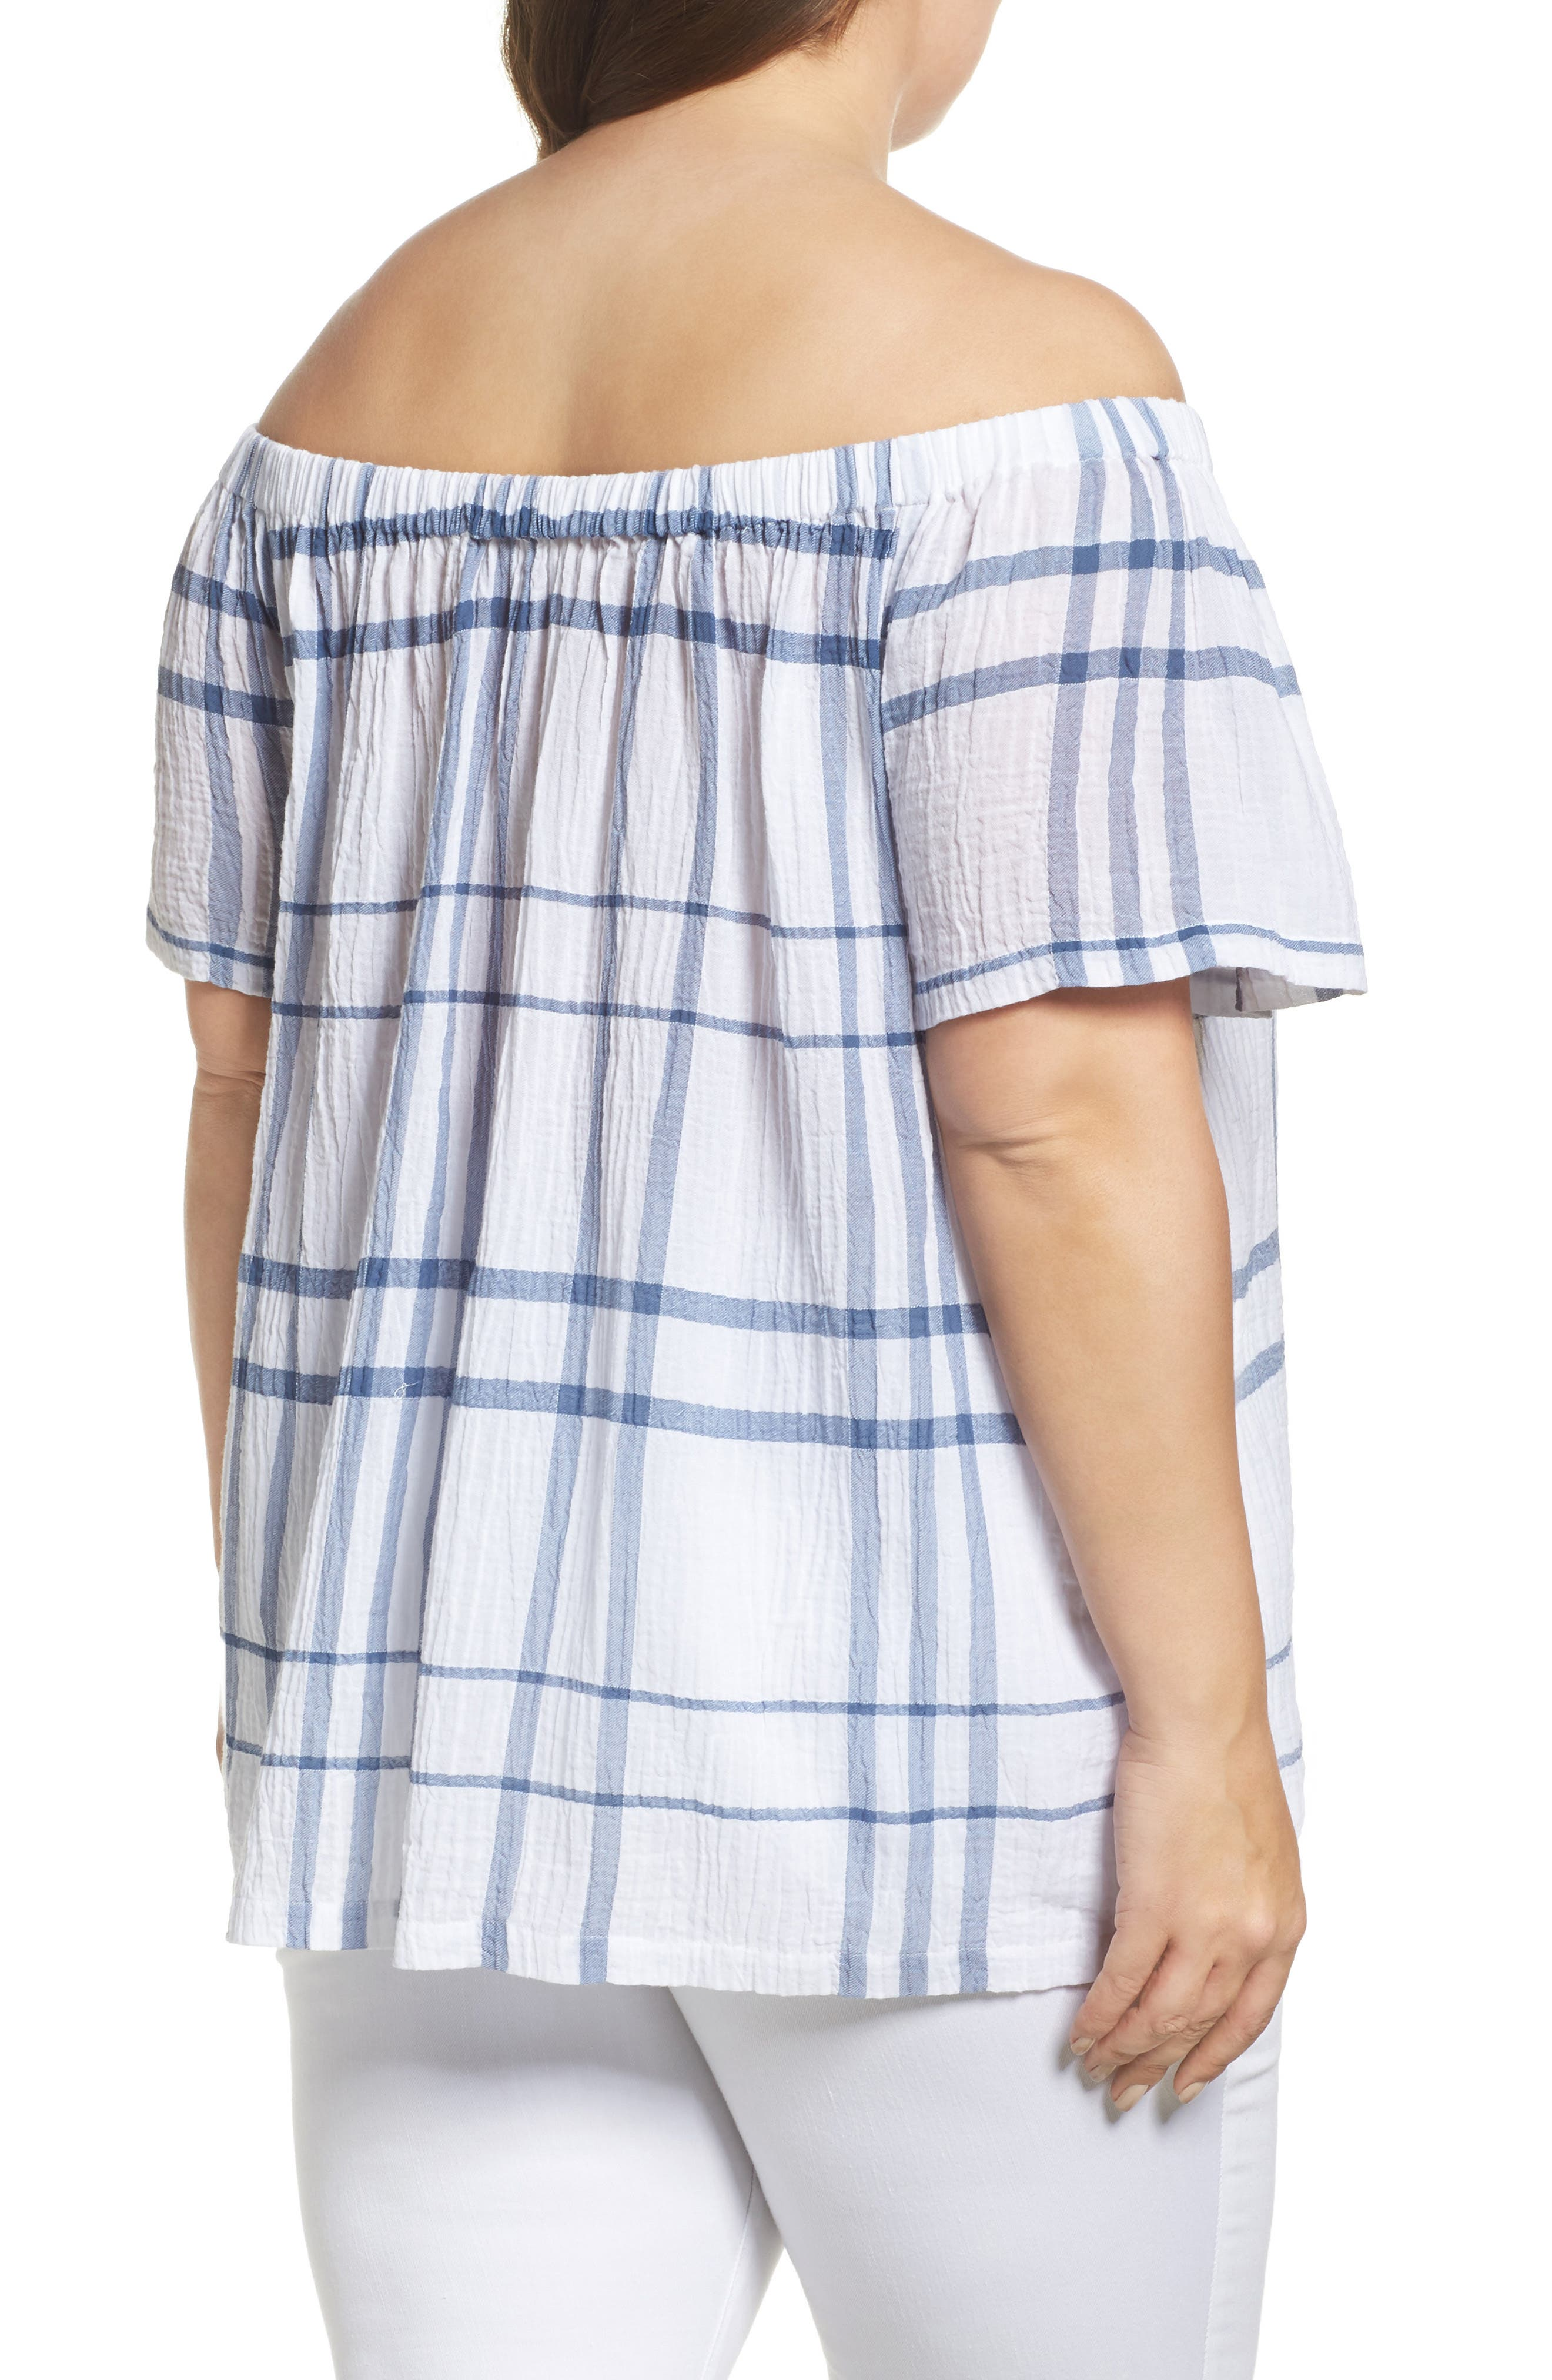 Vince Camuto Timeless Plaid Off the Shoulder Blouse,                             Alternate thumbnail 2, color,                             400